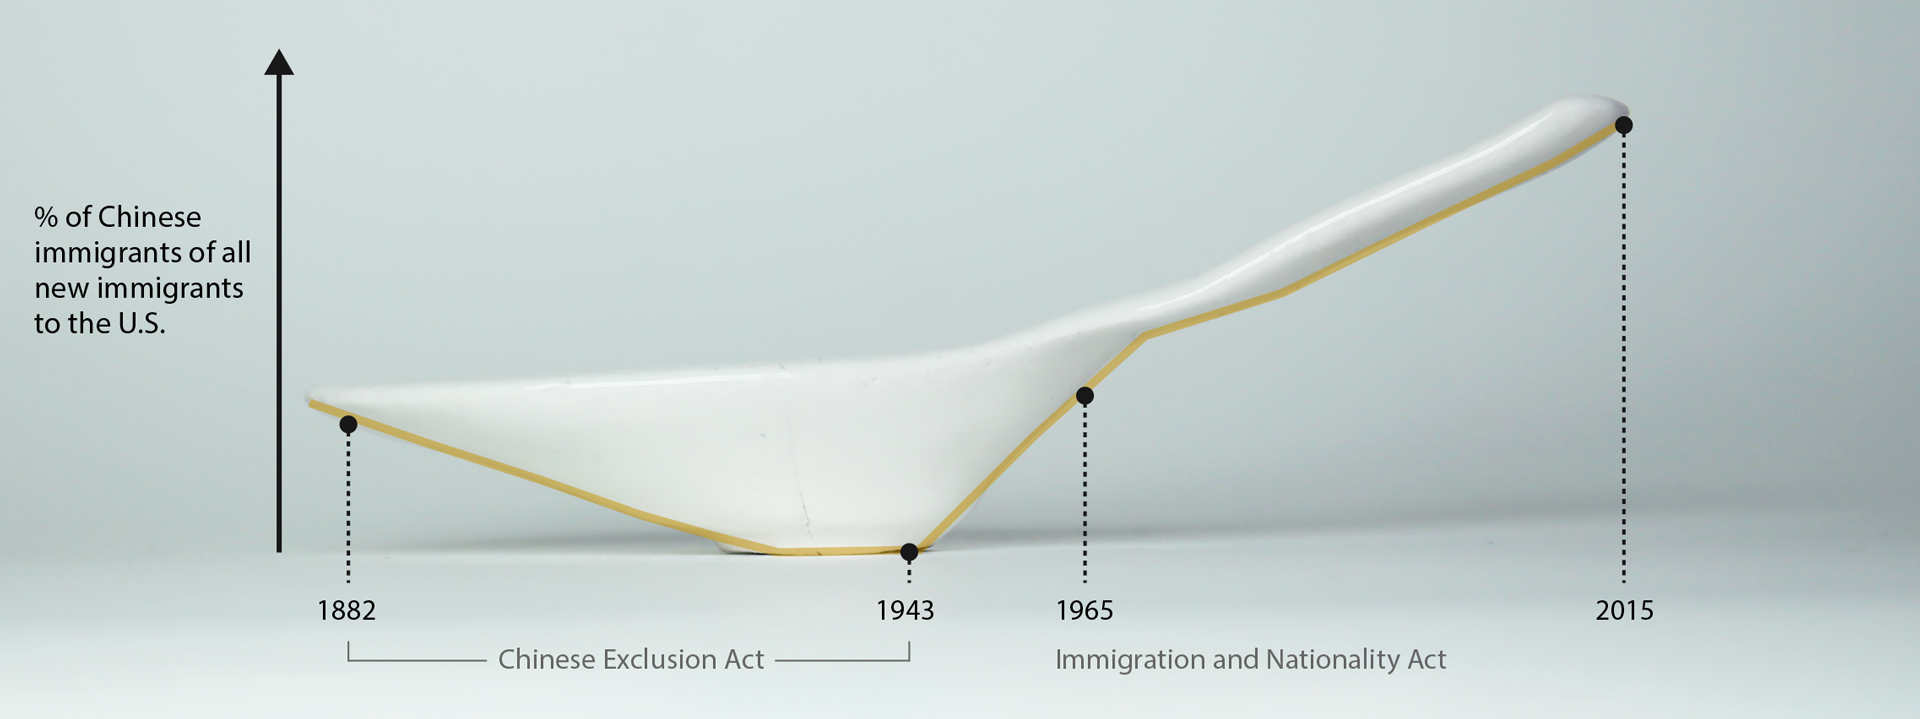 Soup spoon with overlaid graph of percentage of Chinese immigrants to the United States